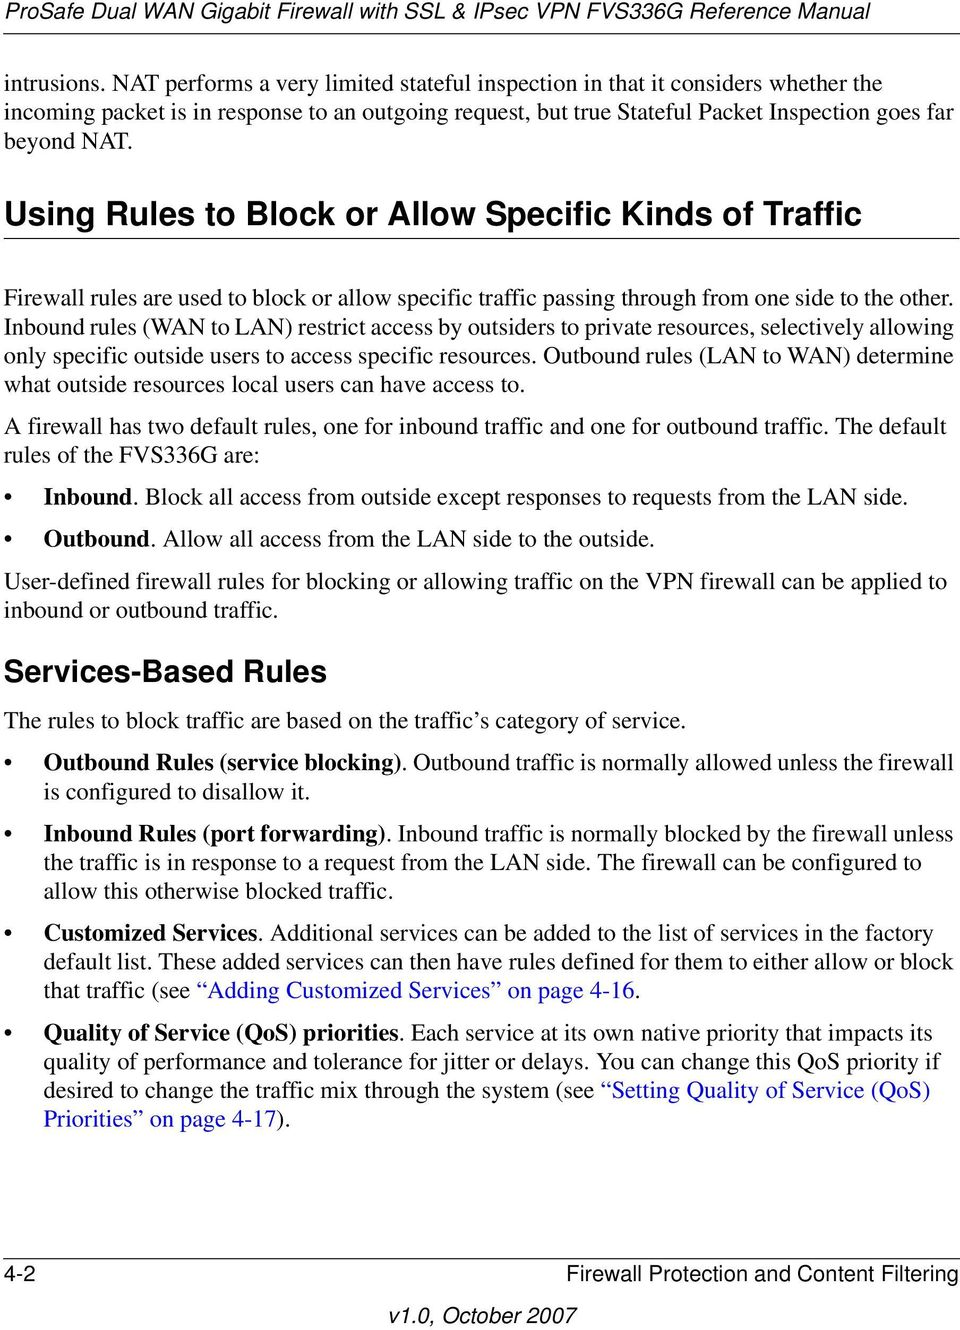 Using Rules to Block or Allow Specific Kinds of Traffic Firewall rules are used to block or allow specific traffic passing through from one side to the other.